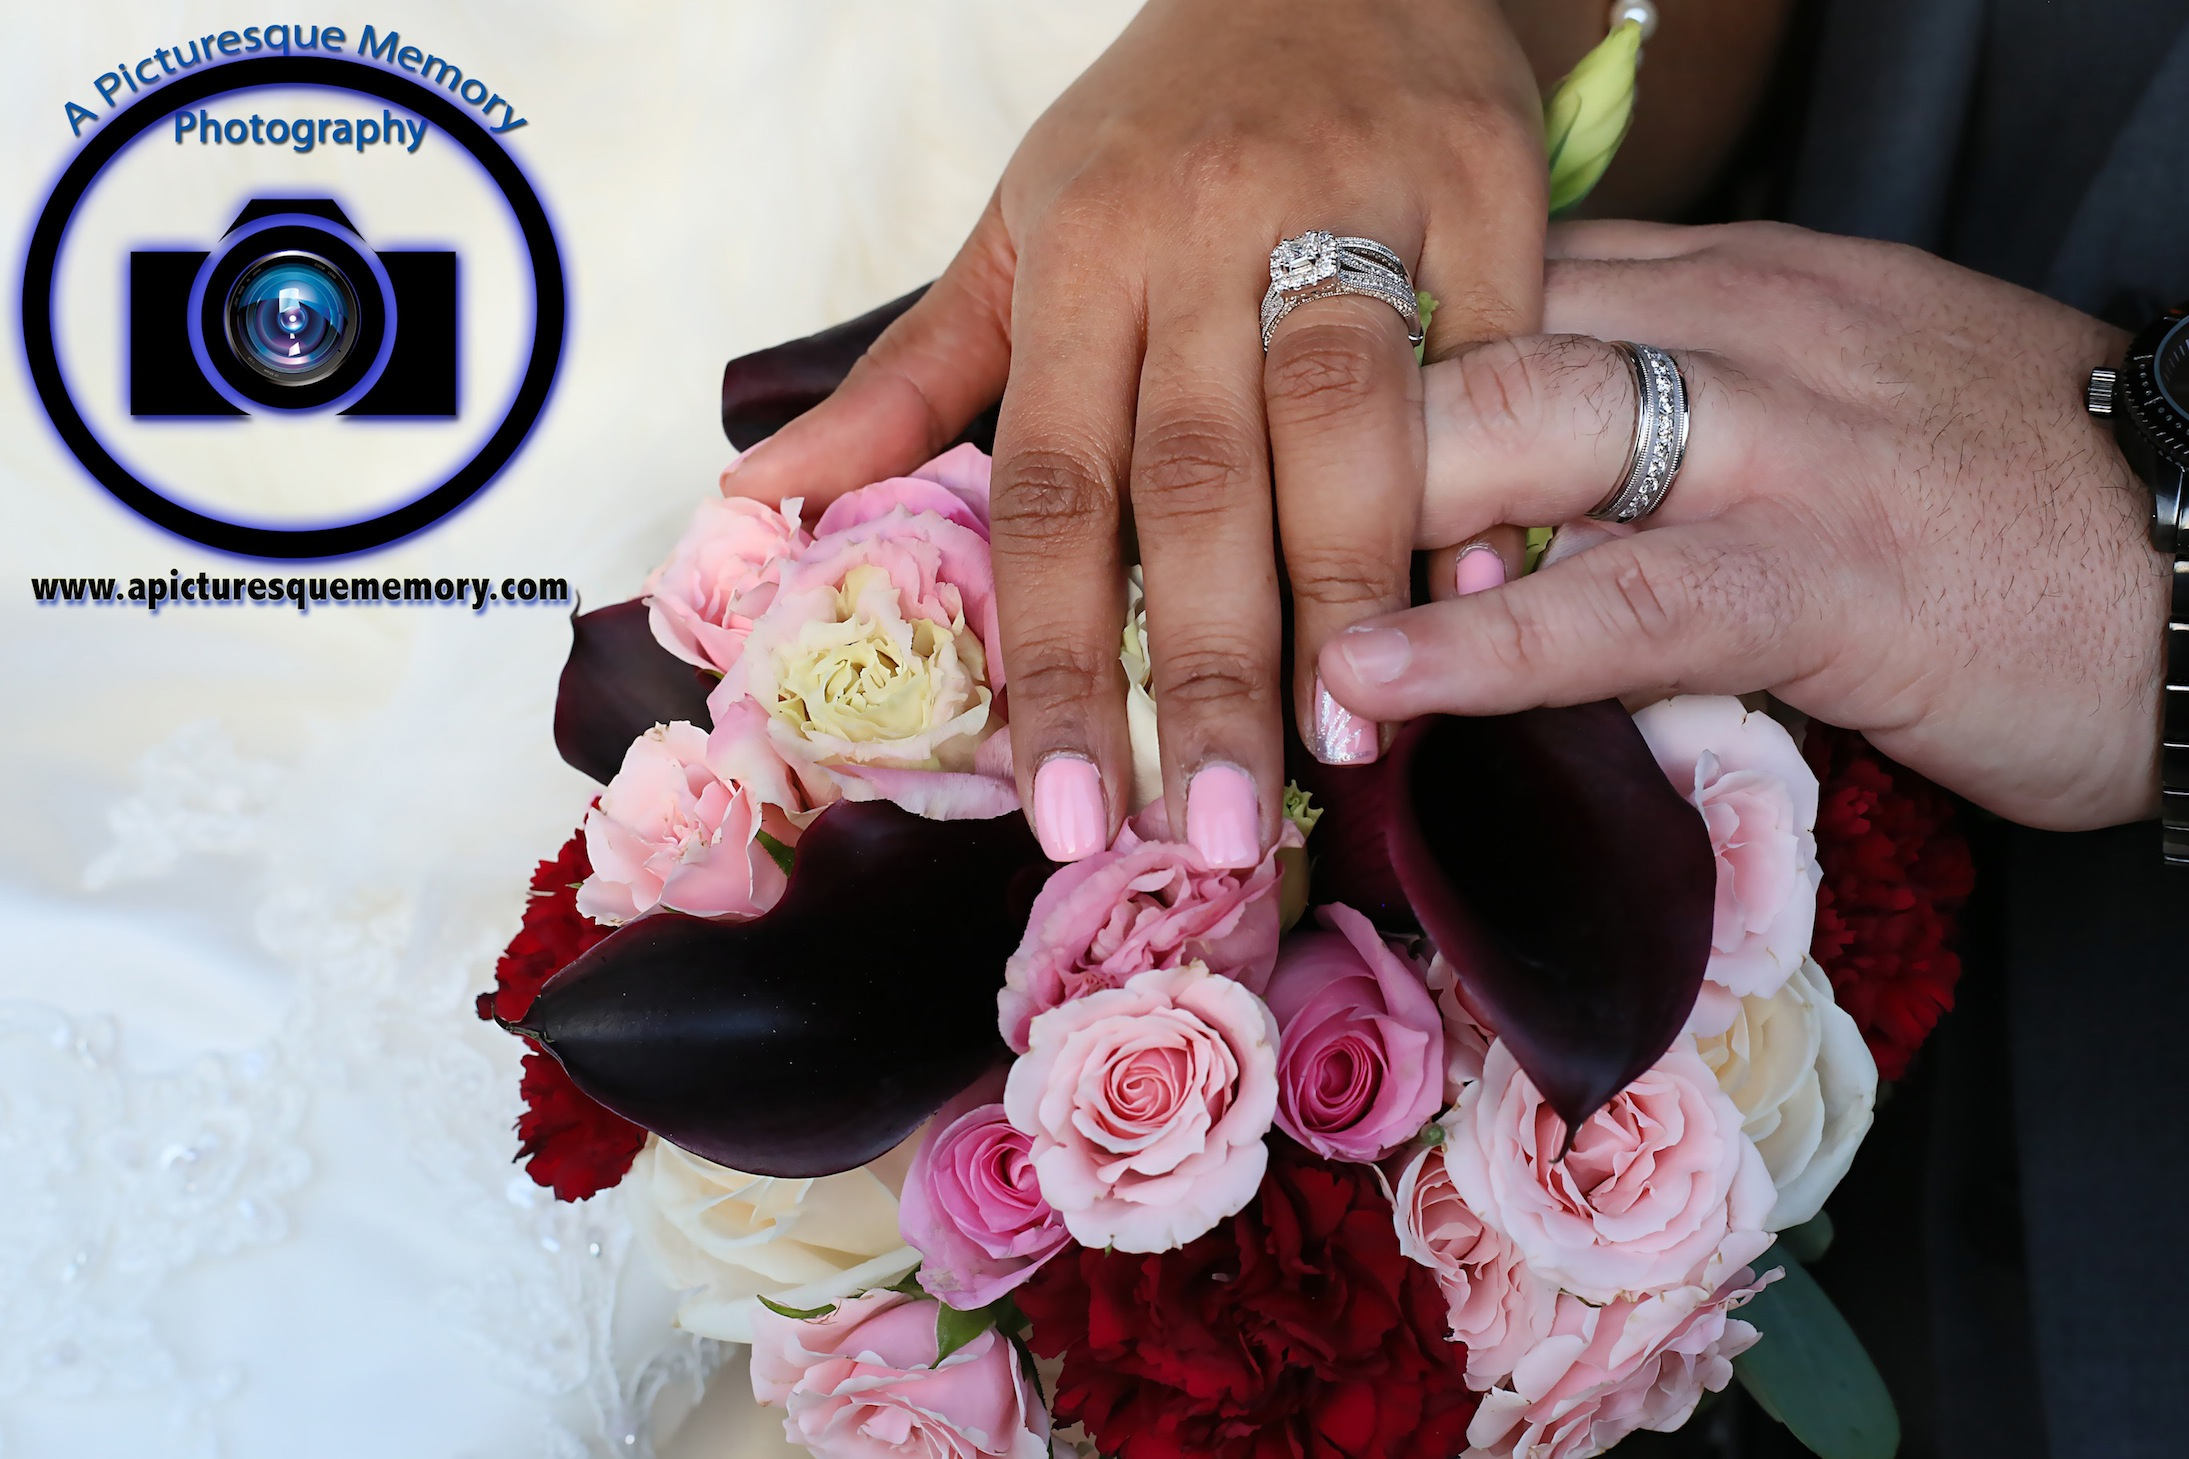 #njwedding, #njweddingphotography, #southbrunswickweddingphotographer#weddingphotos, #apicturesquememoryphotography, #pierresofsouthbrunswickweddingphotographer, #bridesbouquet, #weddingbands, #brideandgroom